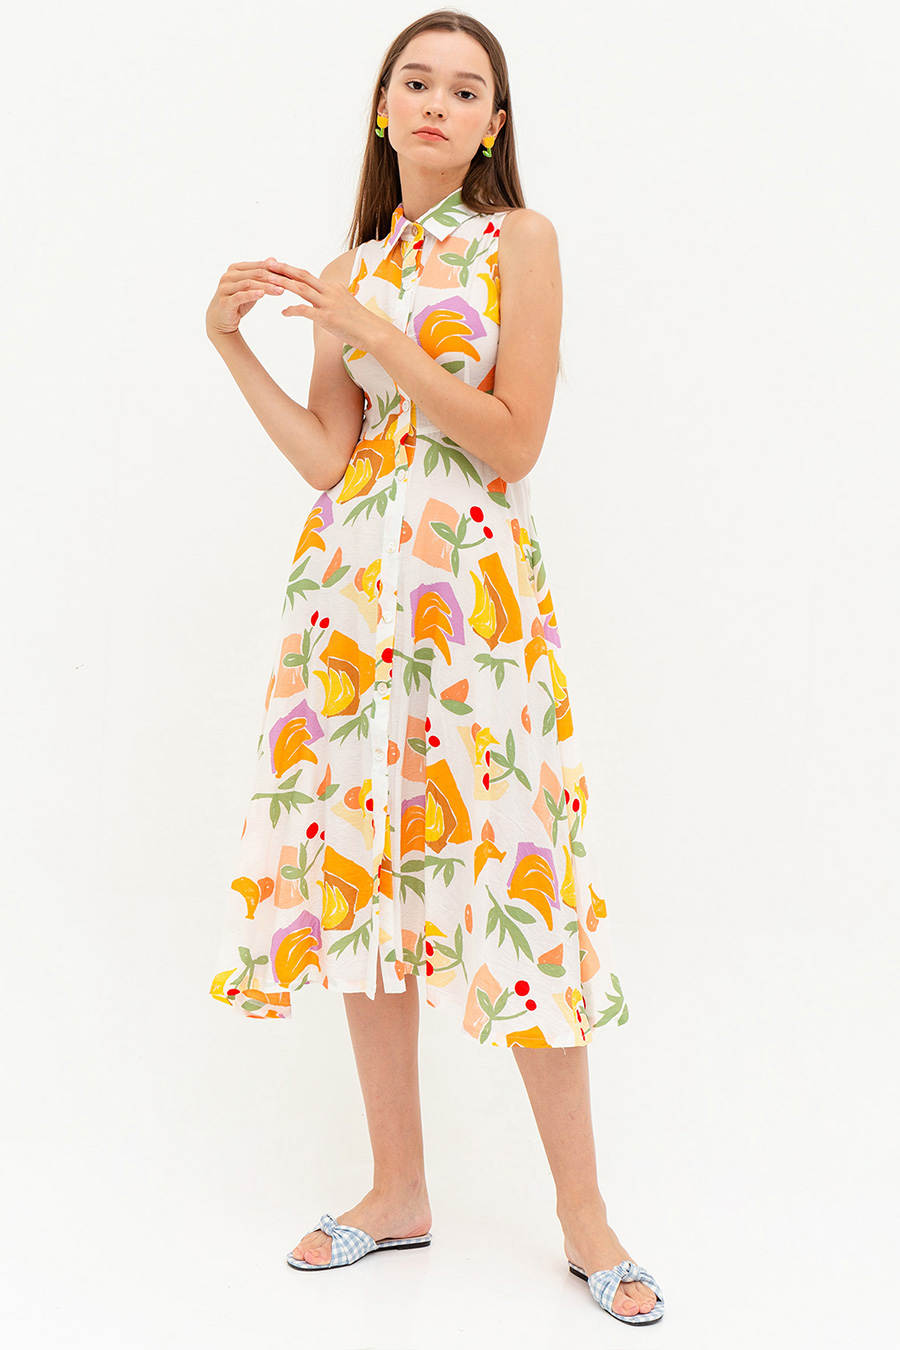 *BO* JOSIE DRESS - FRUITIE [BY MODPARADE]